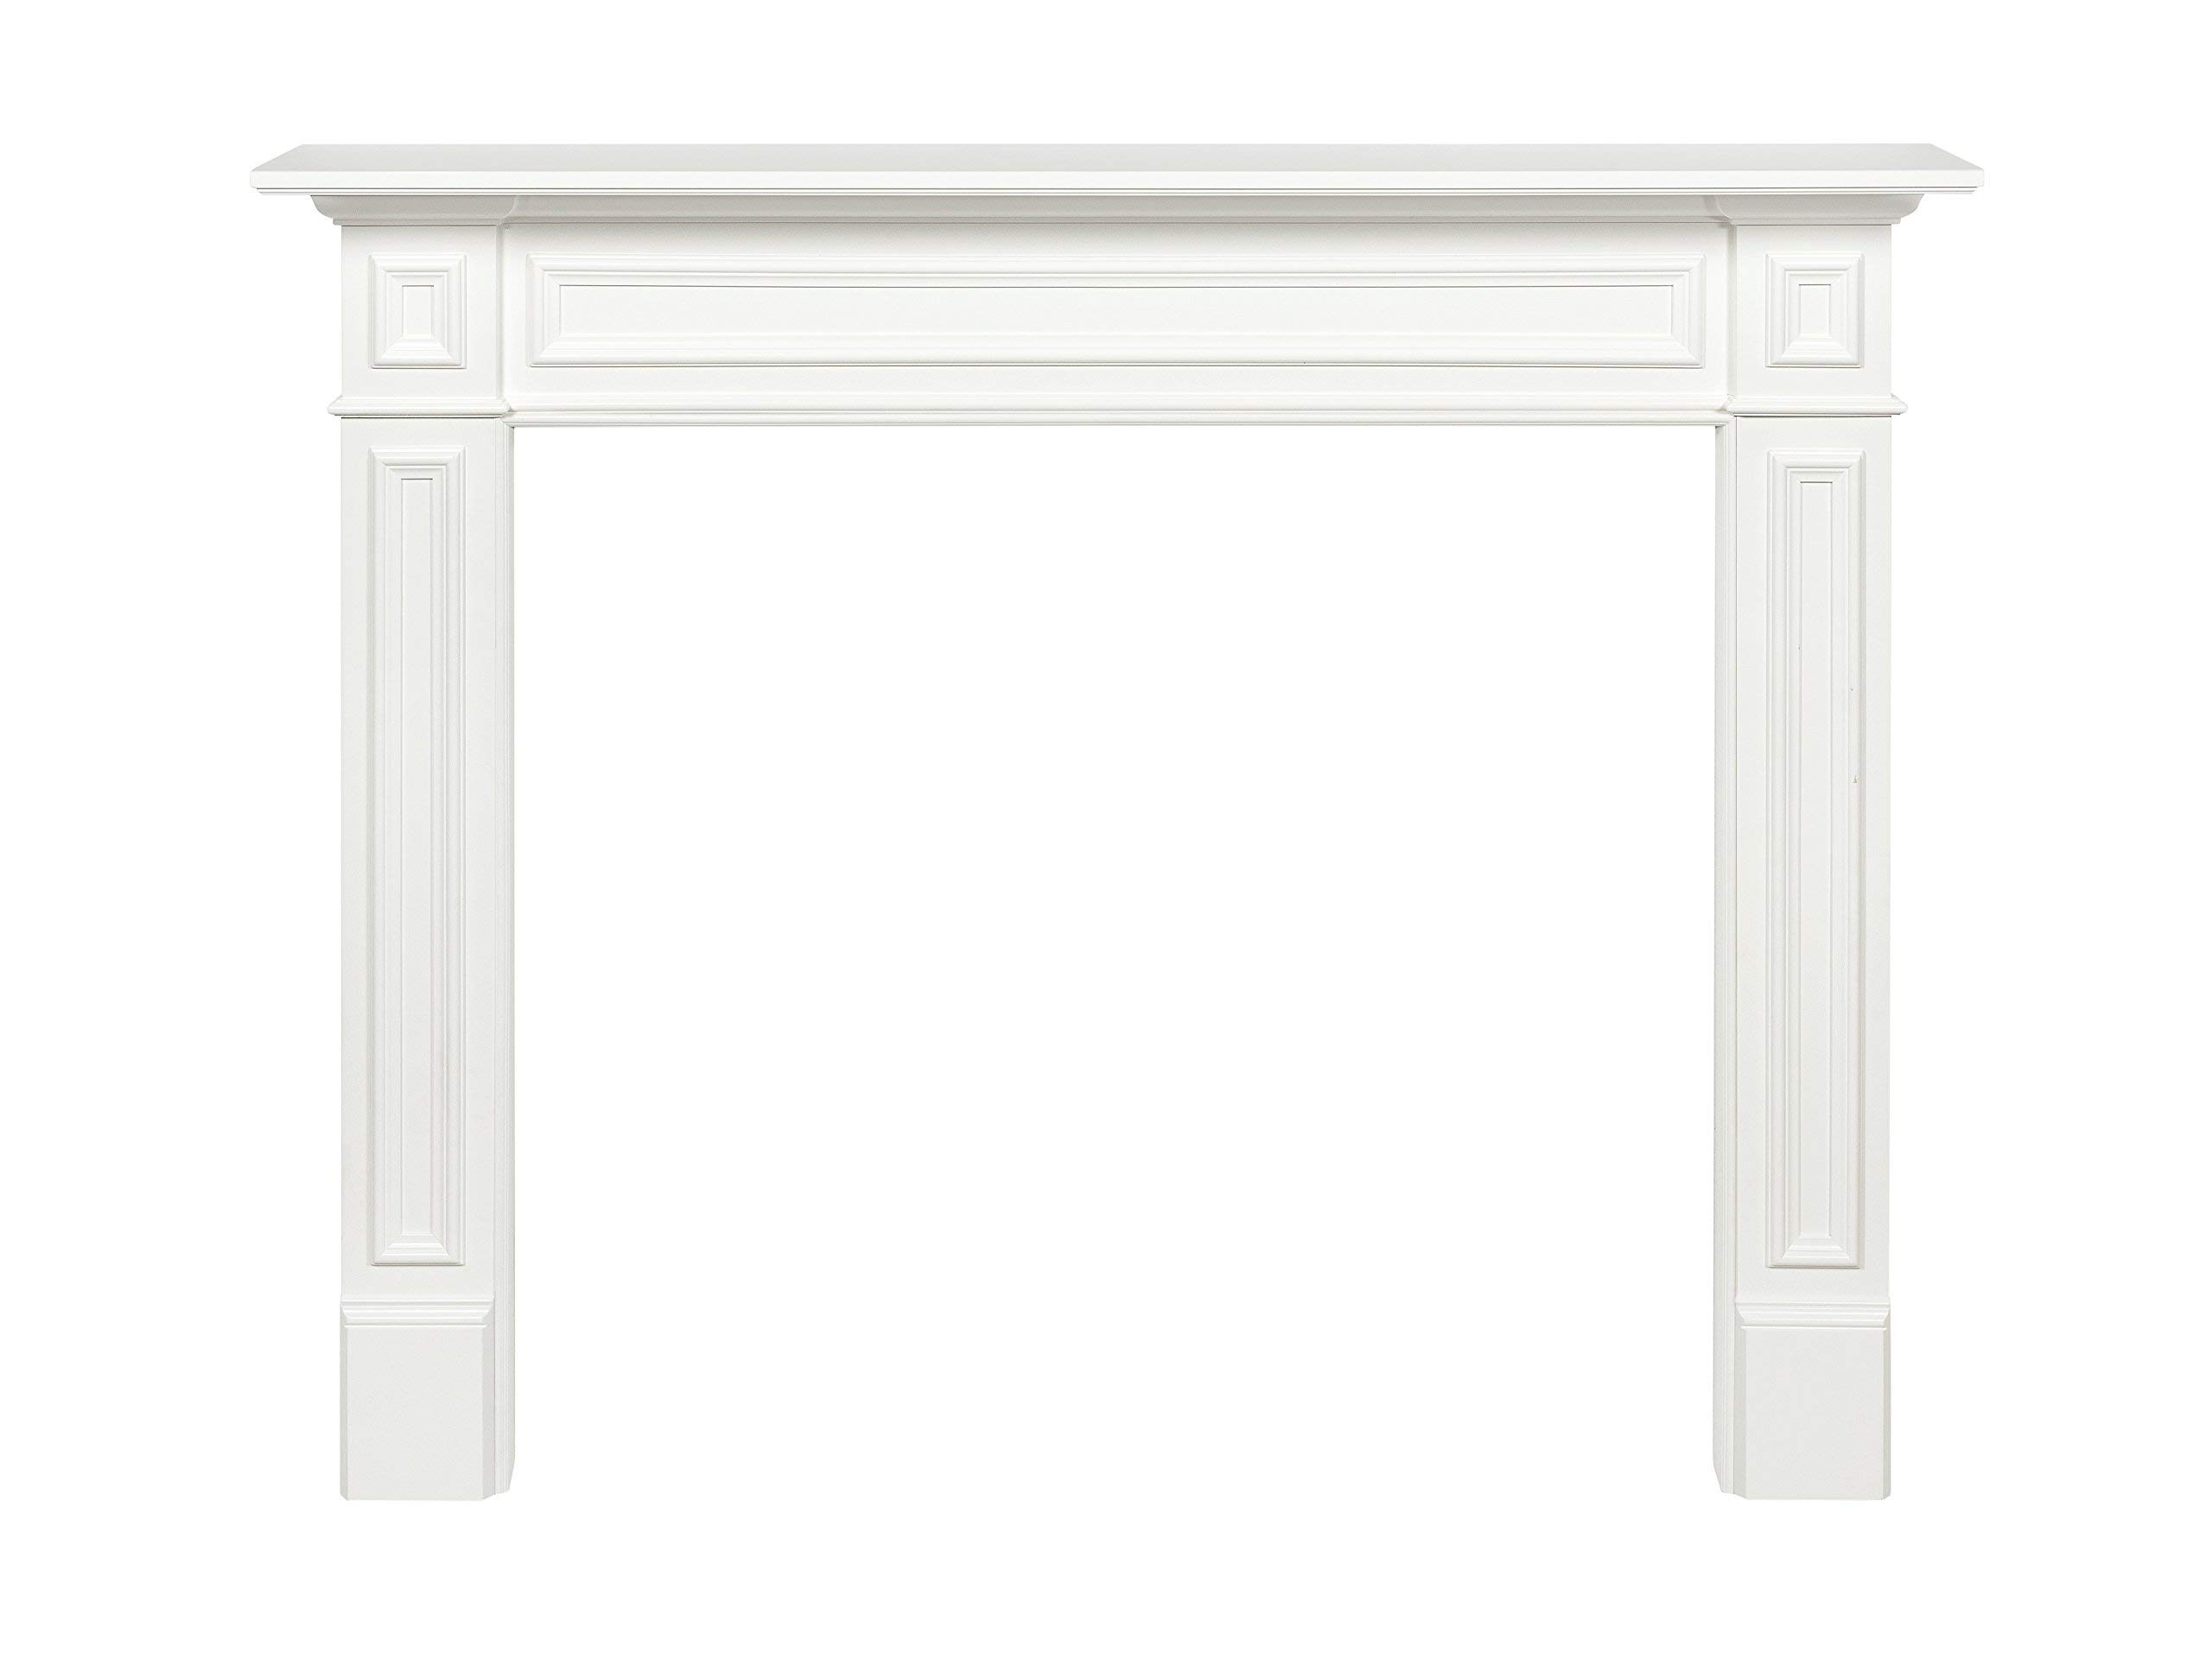 Pearl Mantels 525-48 Mike Fireplace Mantel Surround MDF, 48-Inch, White 48 Inch (Renewed) by Pearl Mantels